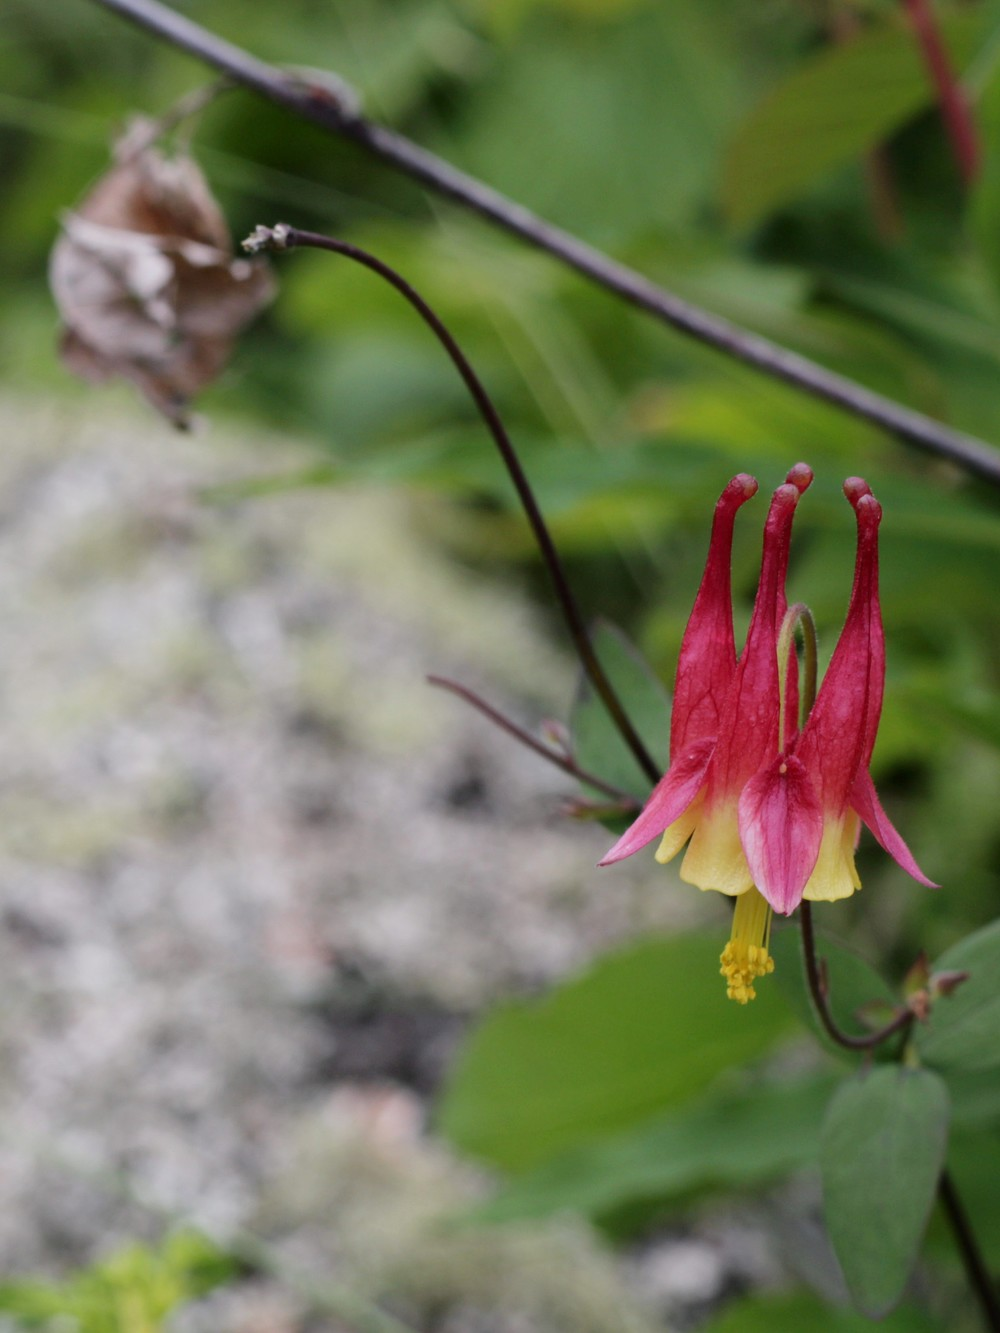 Flower - Isle Royale, MI - July 2014